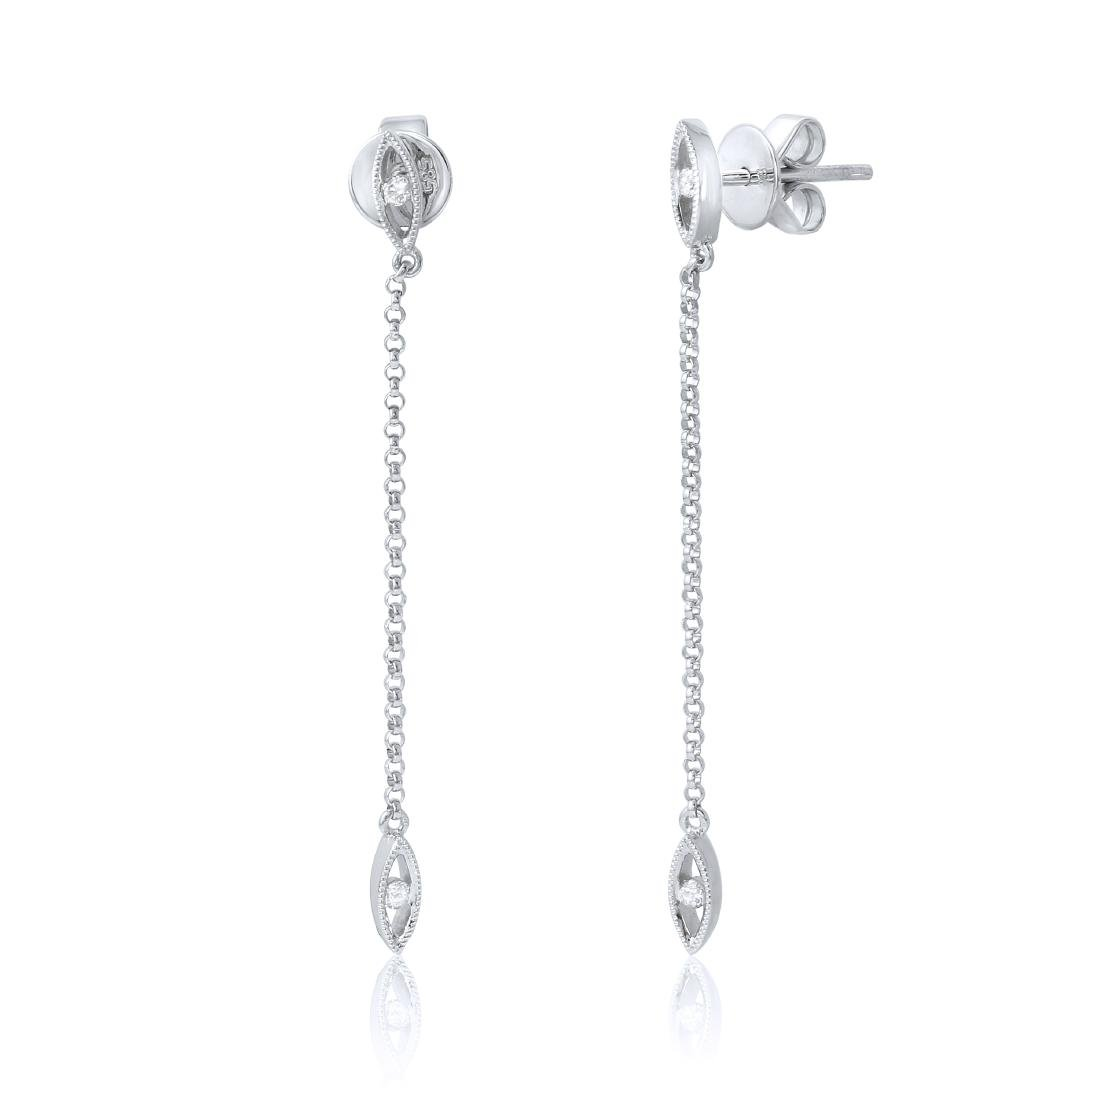 14KT White Gold Diamond Linear Earrings